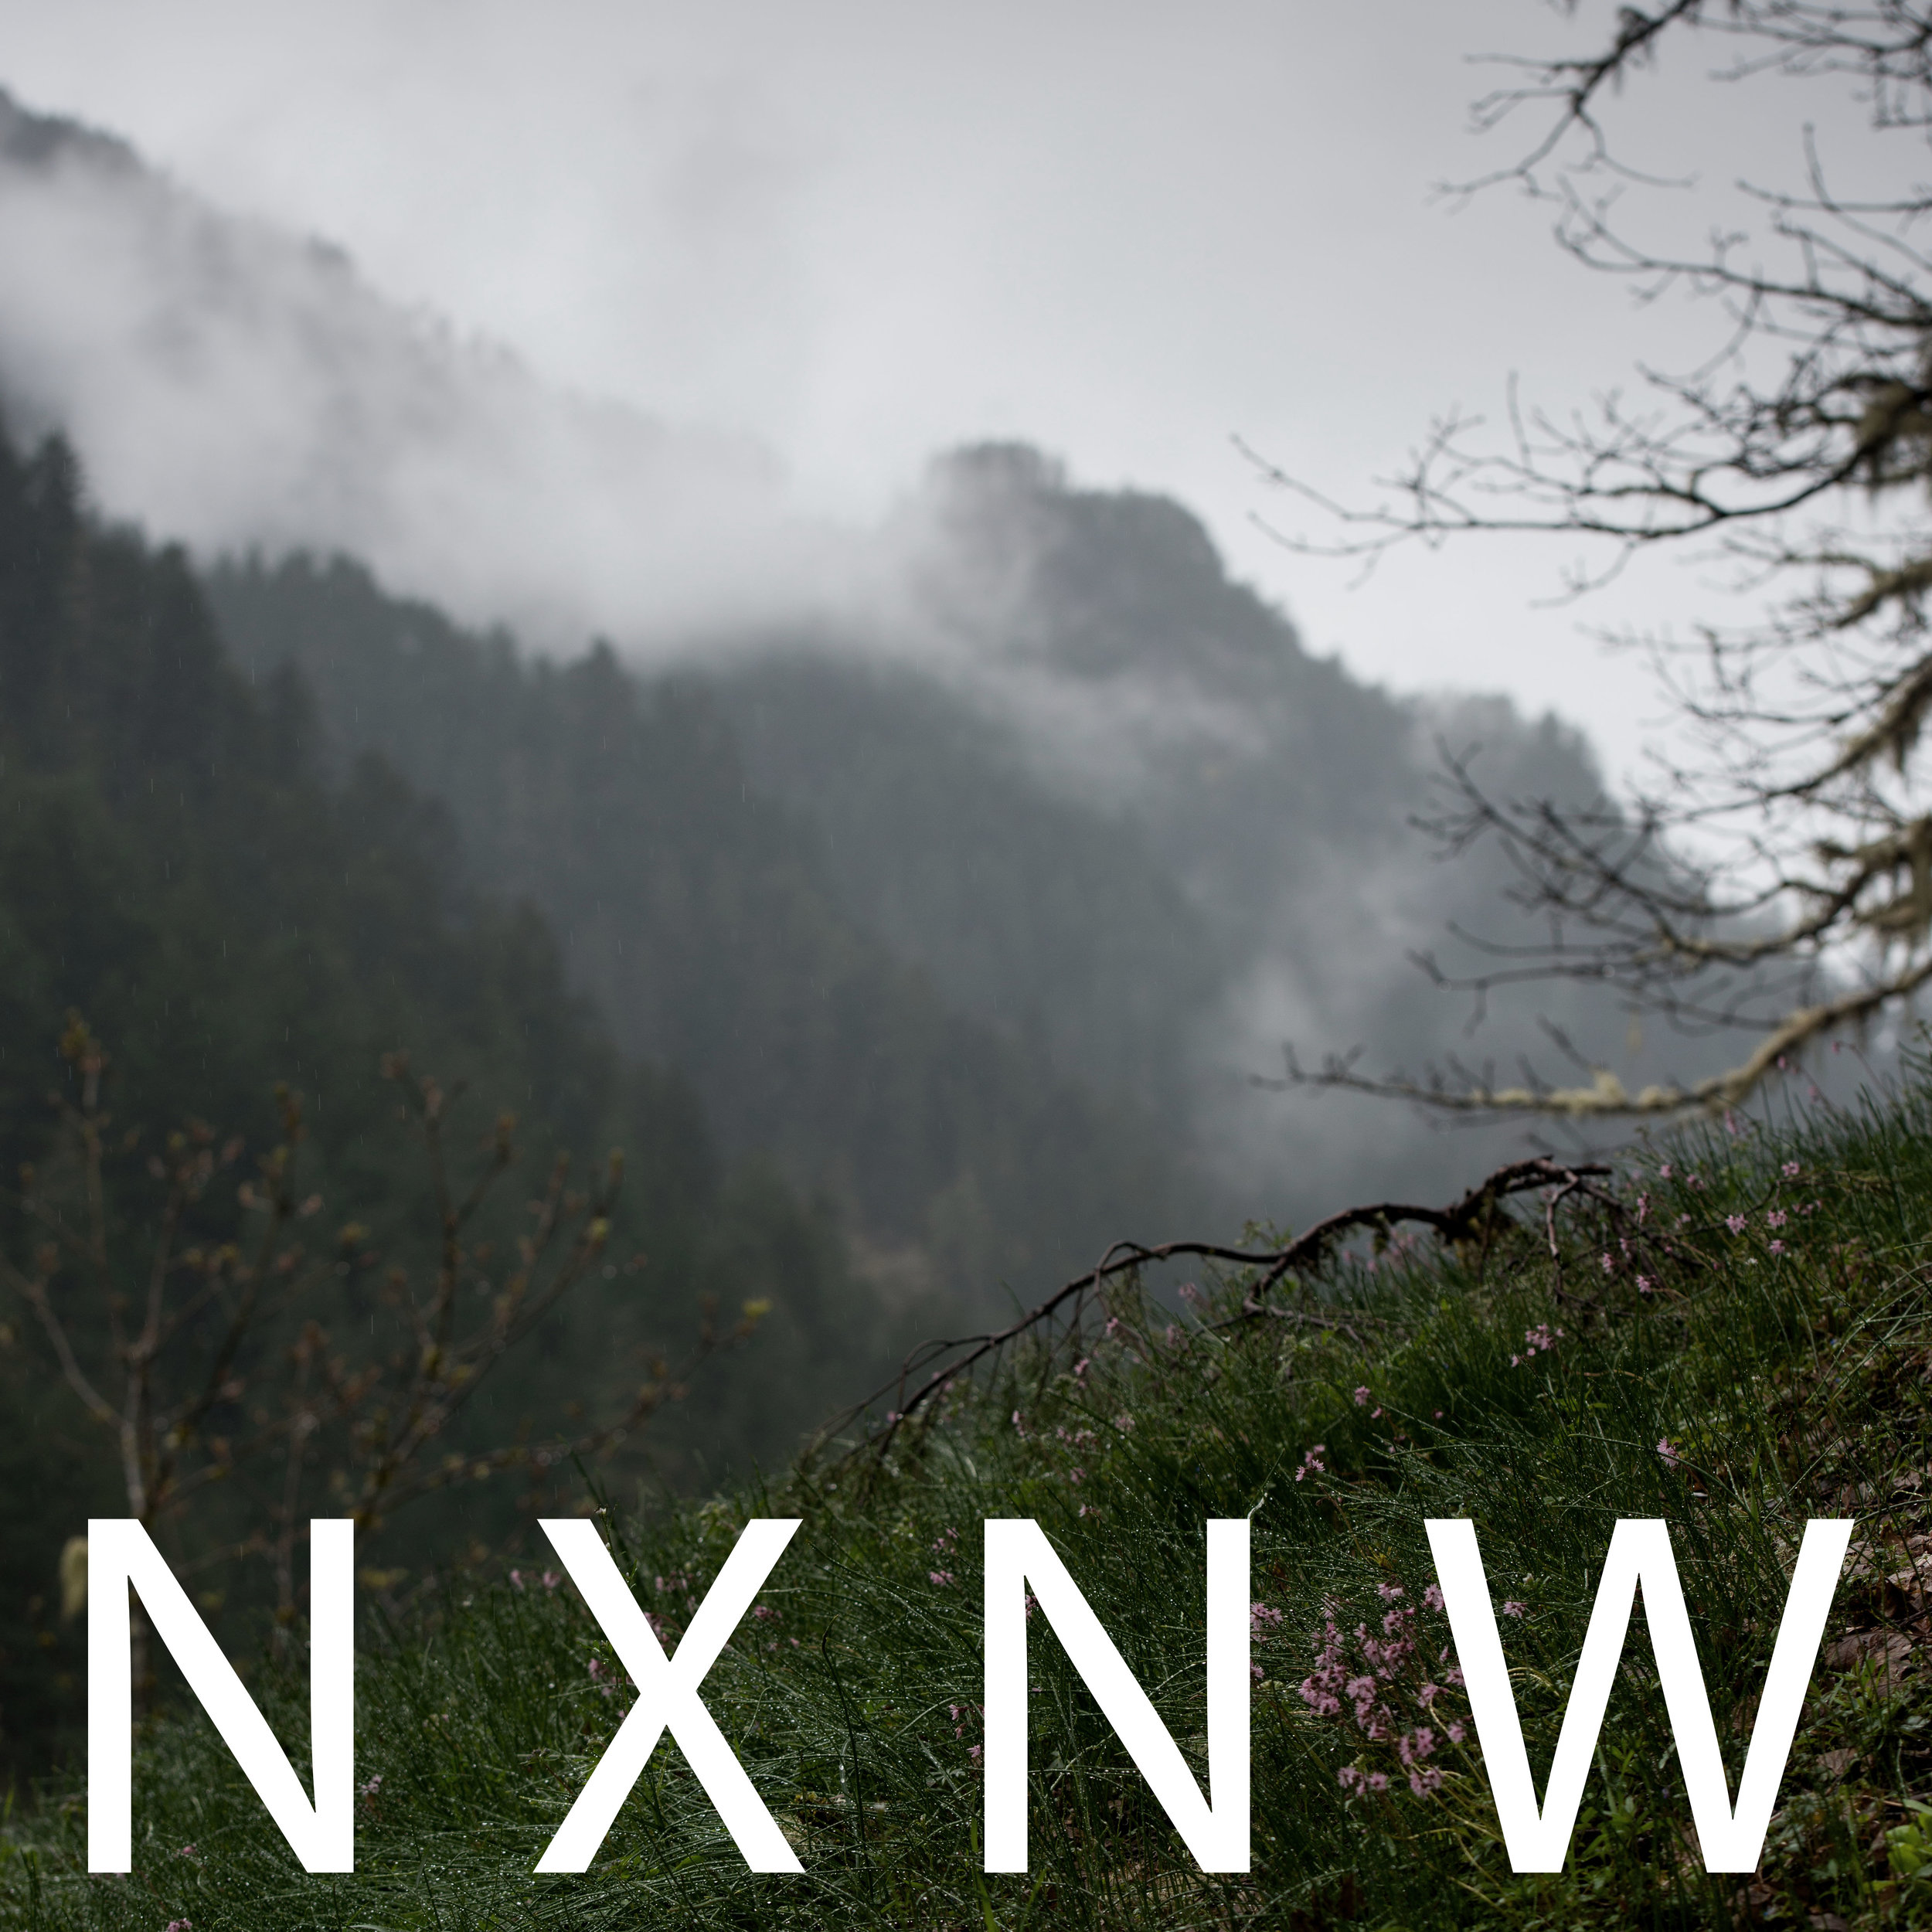 NXNW CASCADIA 2017 - This library of environmental recordings is the culmination of three recording expeditions to the stunningly gorgeous Pacific Northwest. We visited a variety of locations ranging from urban Vancouver, Portland, and Seattle to the wild and untamed Olympic Peninsula. We captured dynamically disparate sounds such as a noisy Seattle shipyard and the quietest location in the continental US - deep within the primordial Hoh Rainforest. There are excellent crowd wallas, and contemplative mountain streams. From beaches to mountaintops to luxury high rises no environment was left un-recorded! This is what the Northwest sounds like!